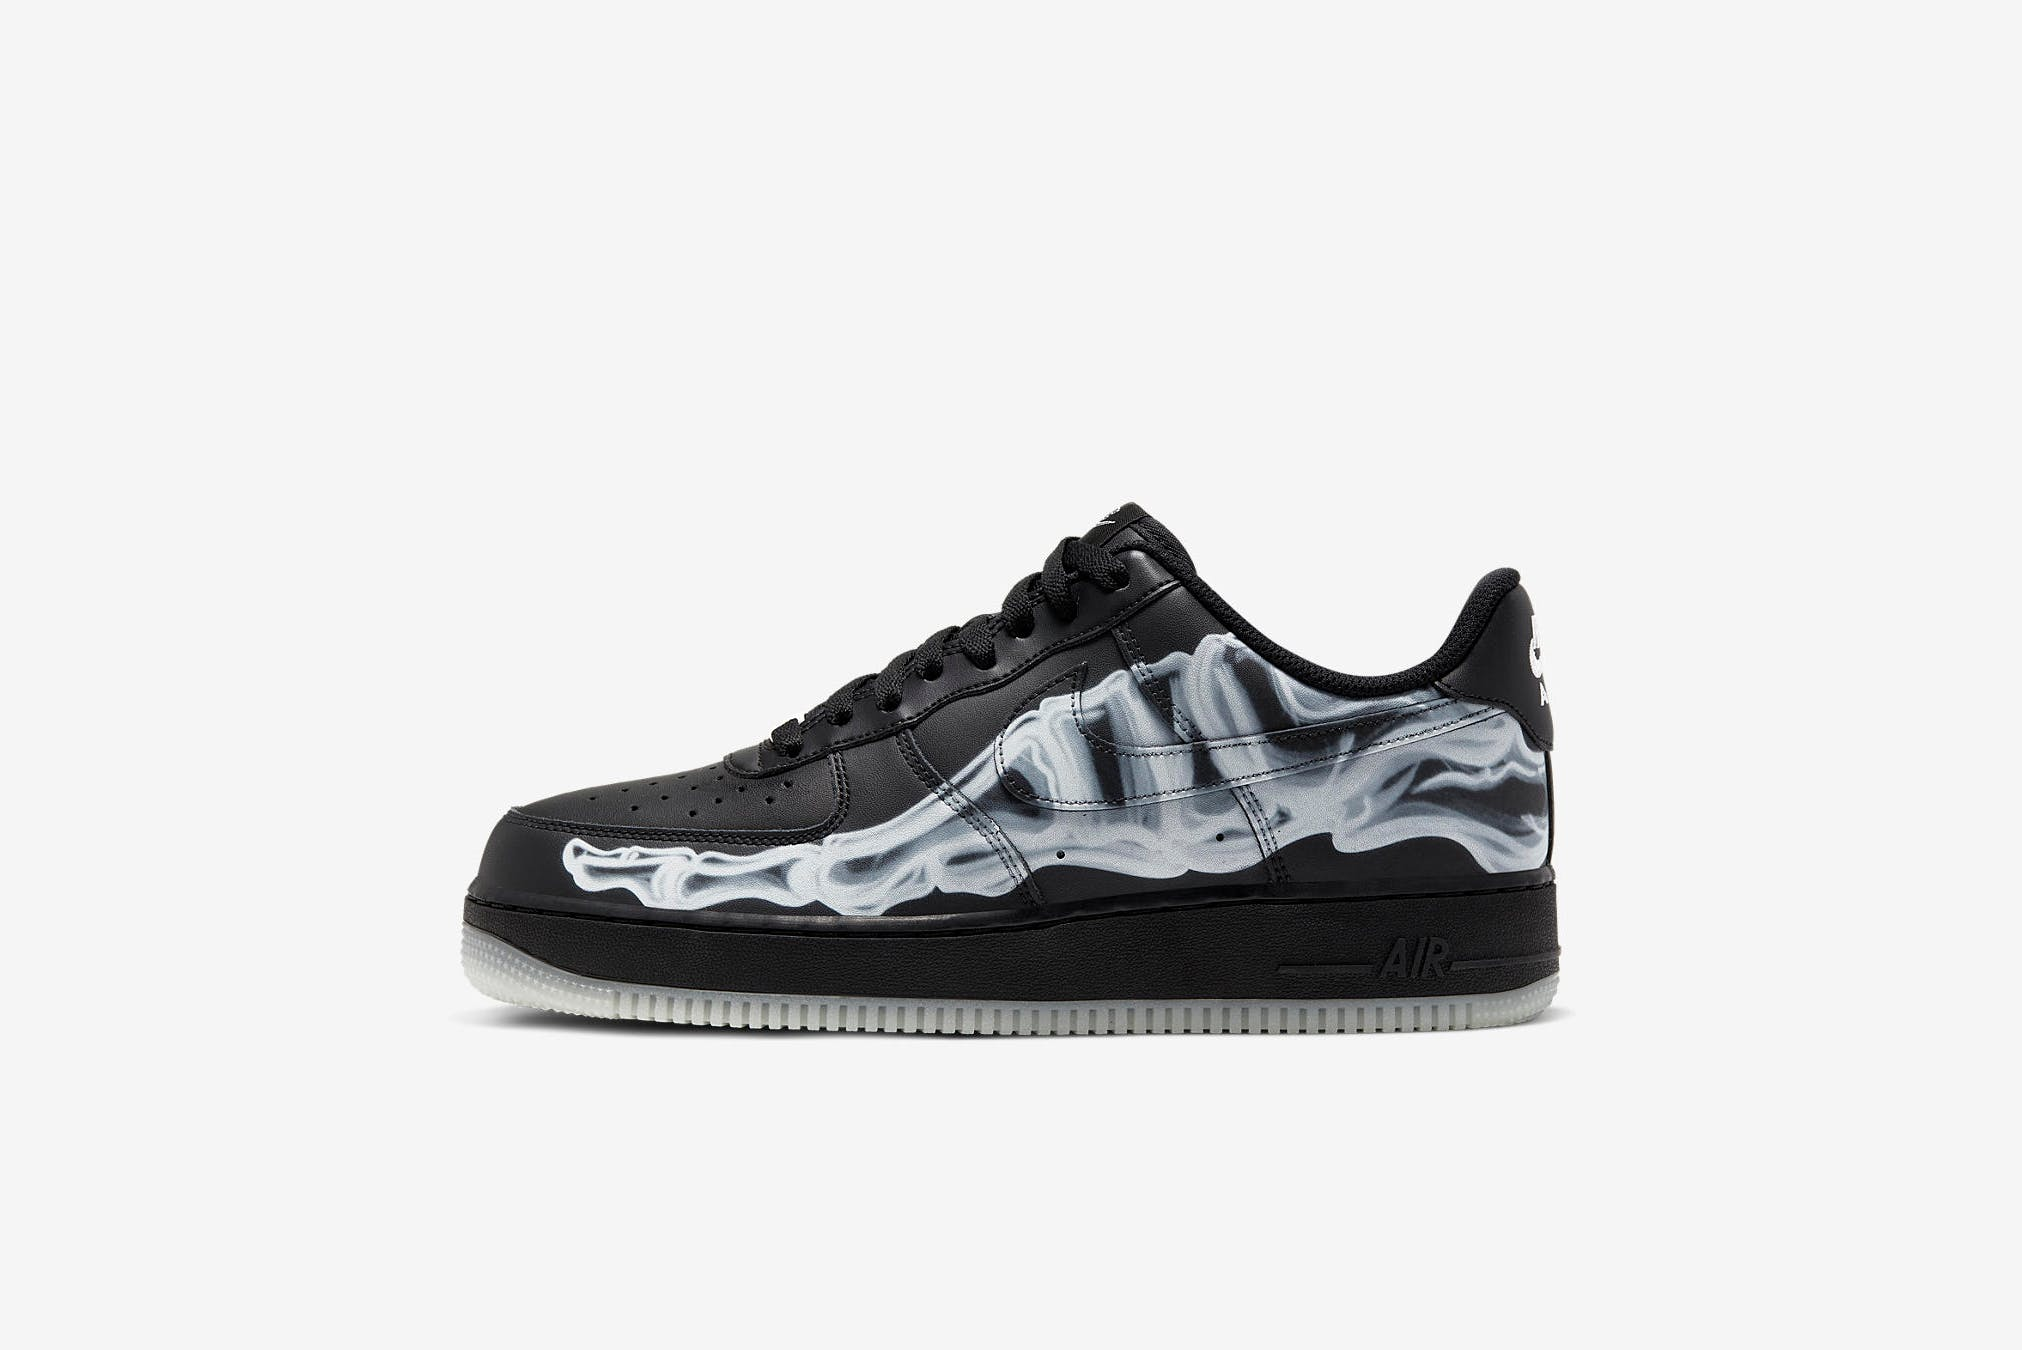 Nike Air Force 1 '07 QS - BQ7541-001